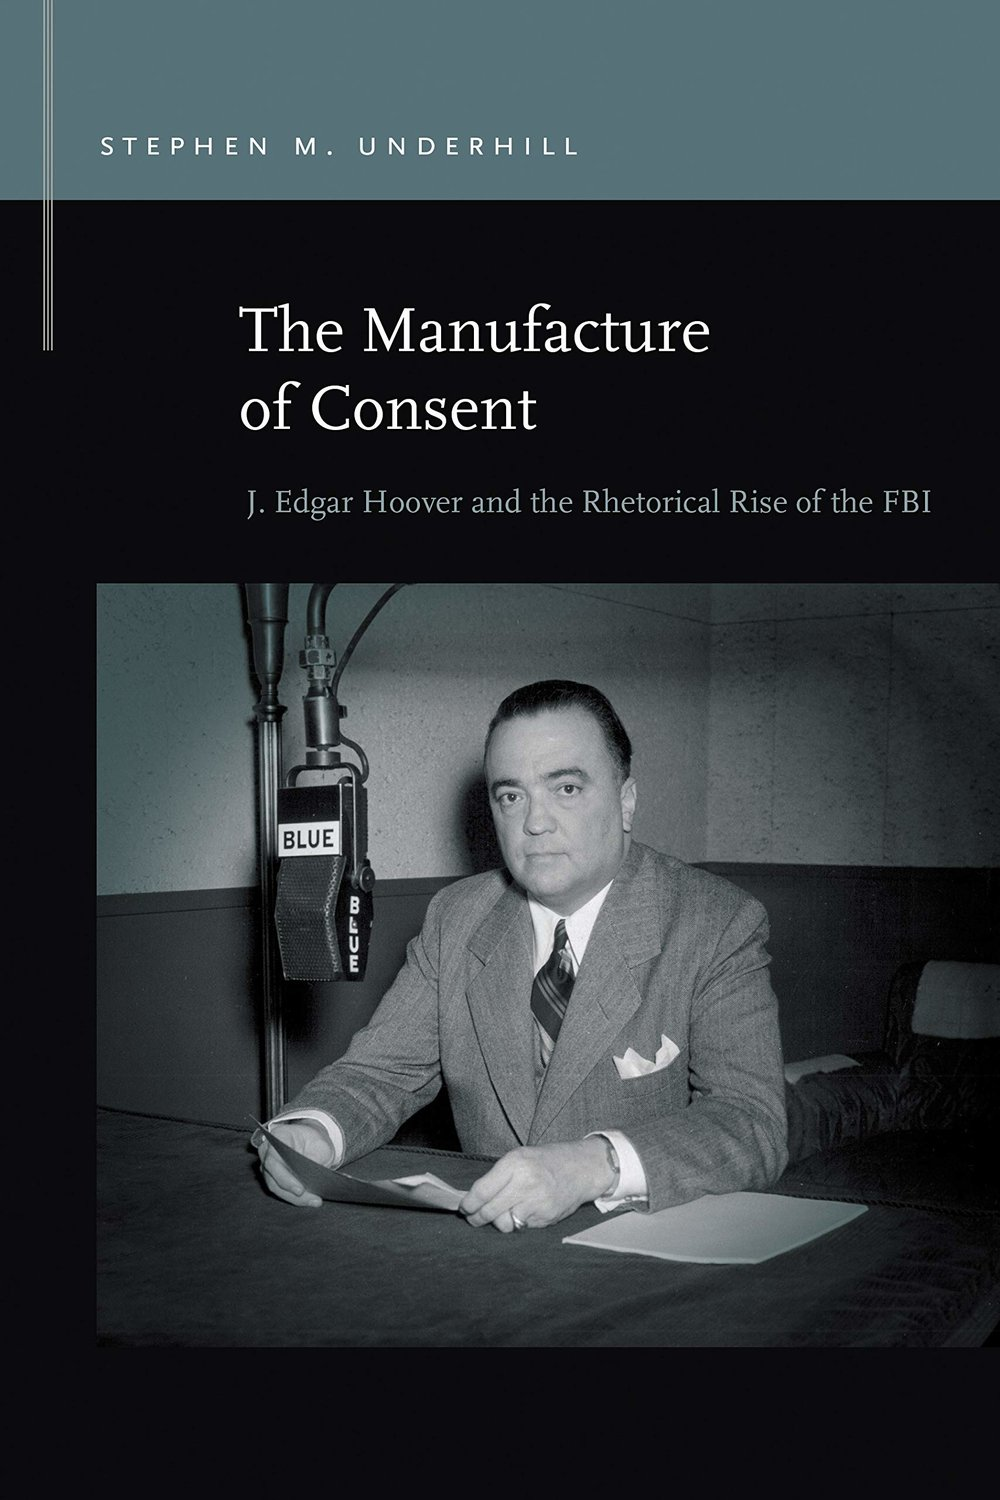 """The Manufacture of Consent: J. Edgar Hoover and the Rhetorical Rise of the FBI."""